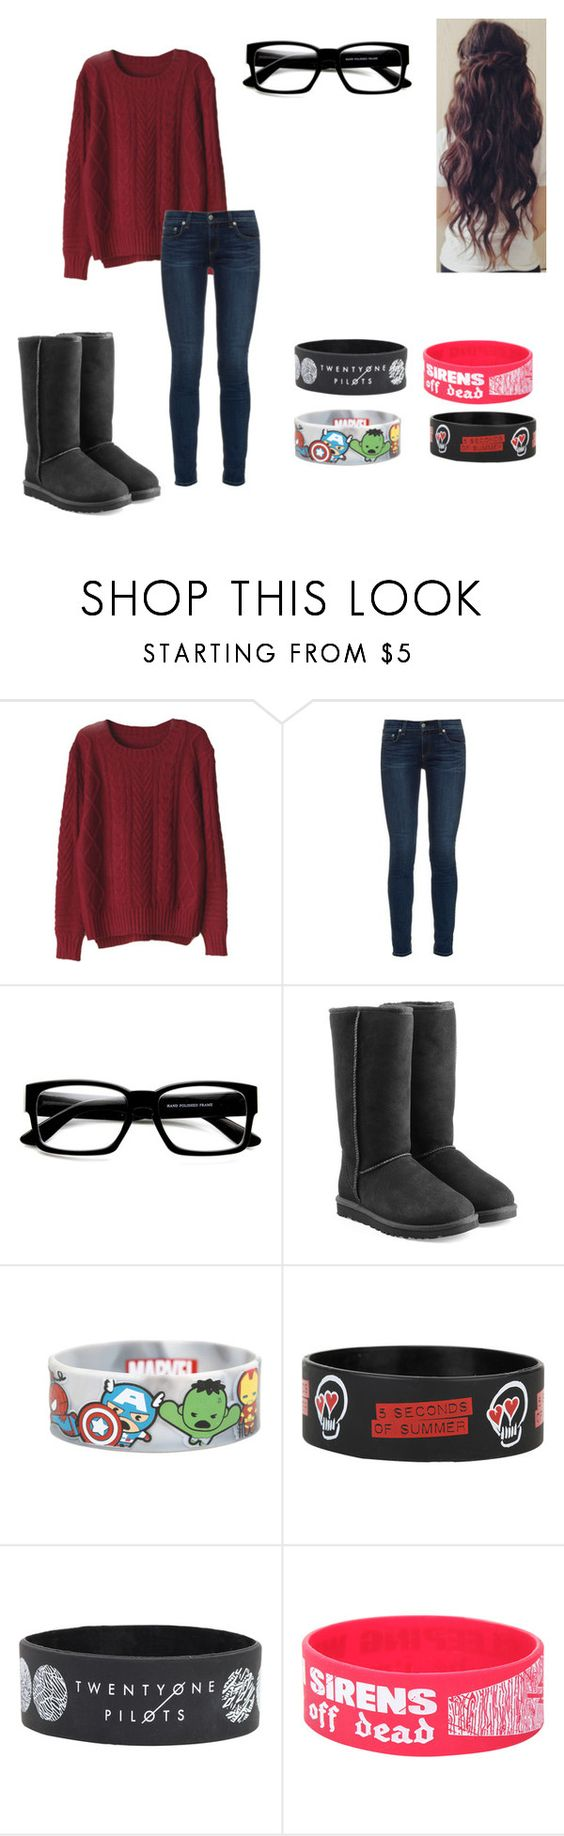 """""""Untitled #139"""" by skybotskyler ❤ liked on Polyvore featuring rag & bone and UGG Australia"""